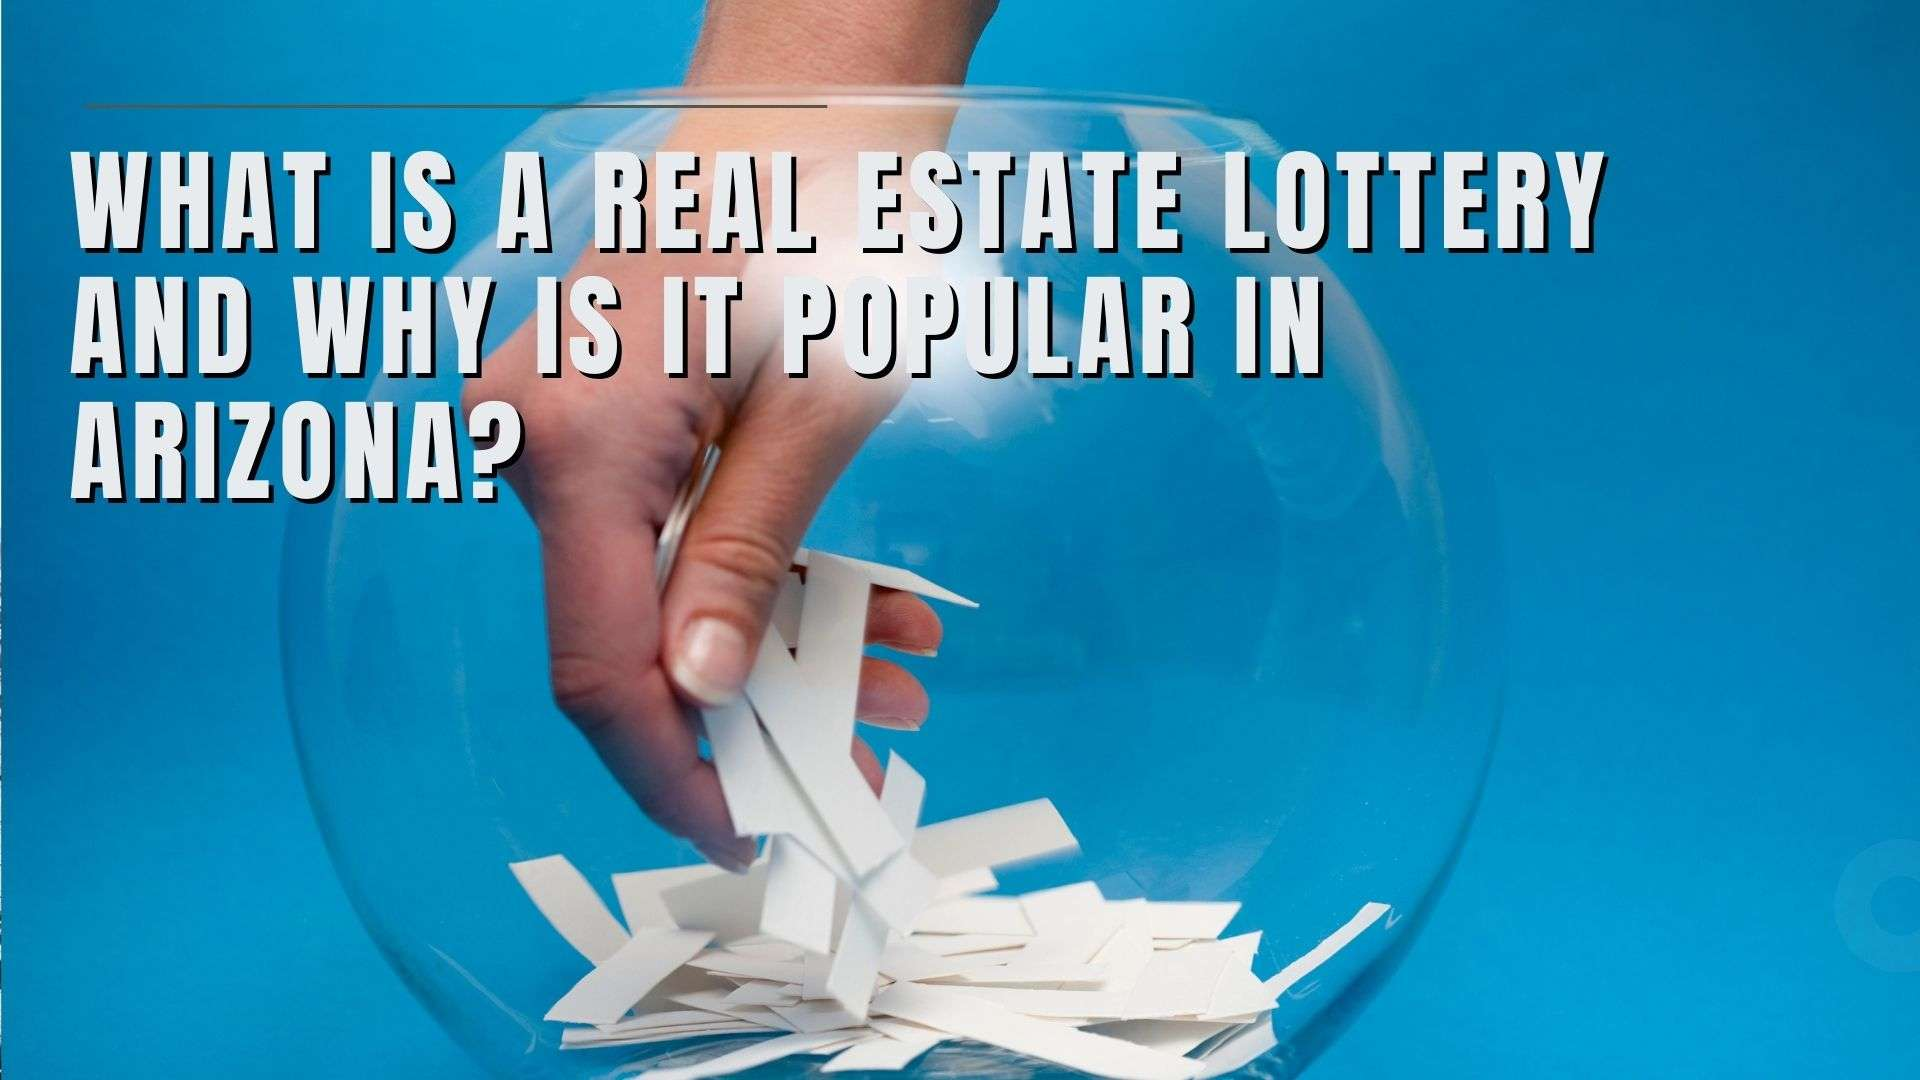 What is a Real Estate Lottery and Why is it Popular in Arizona?